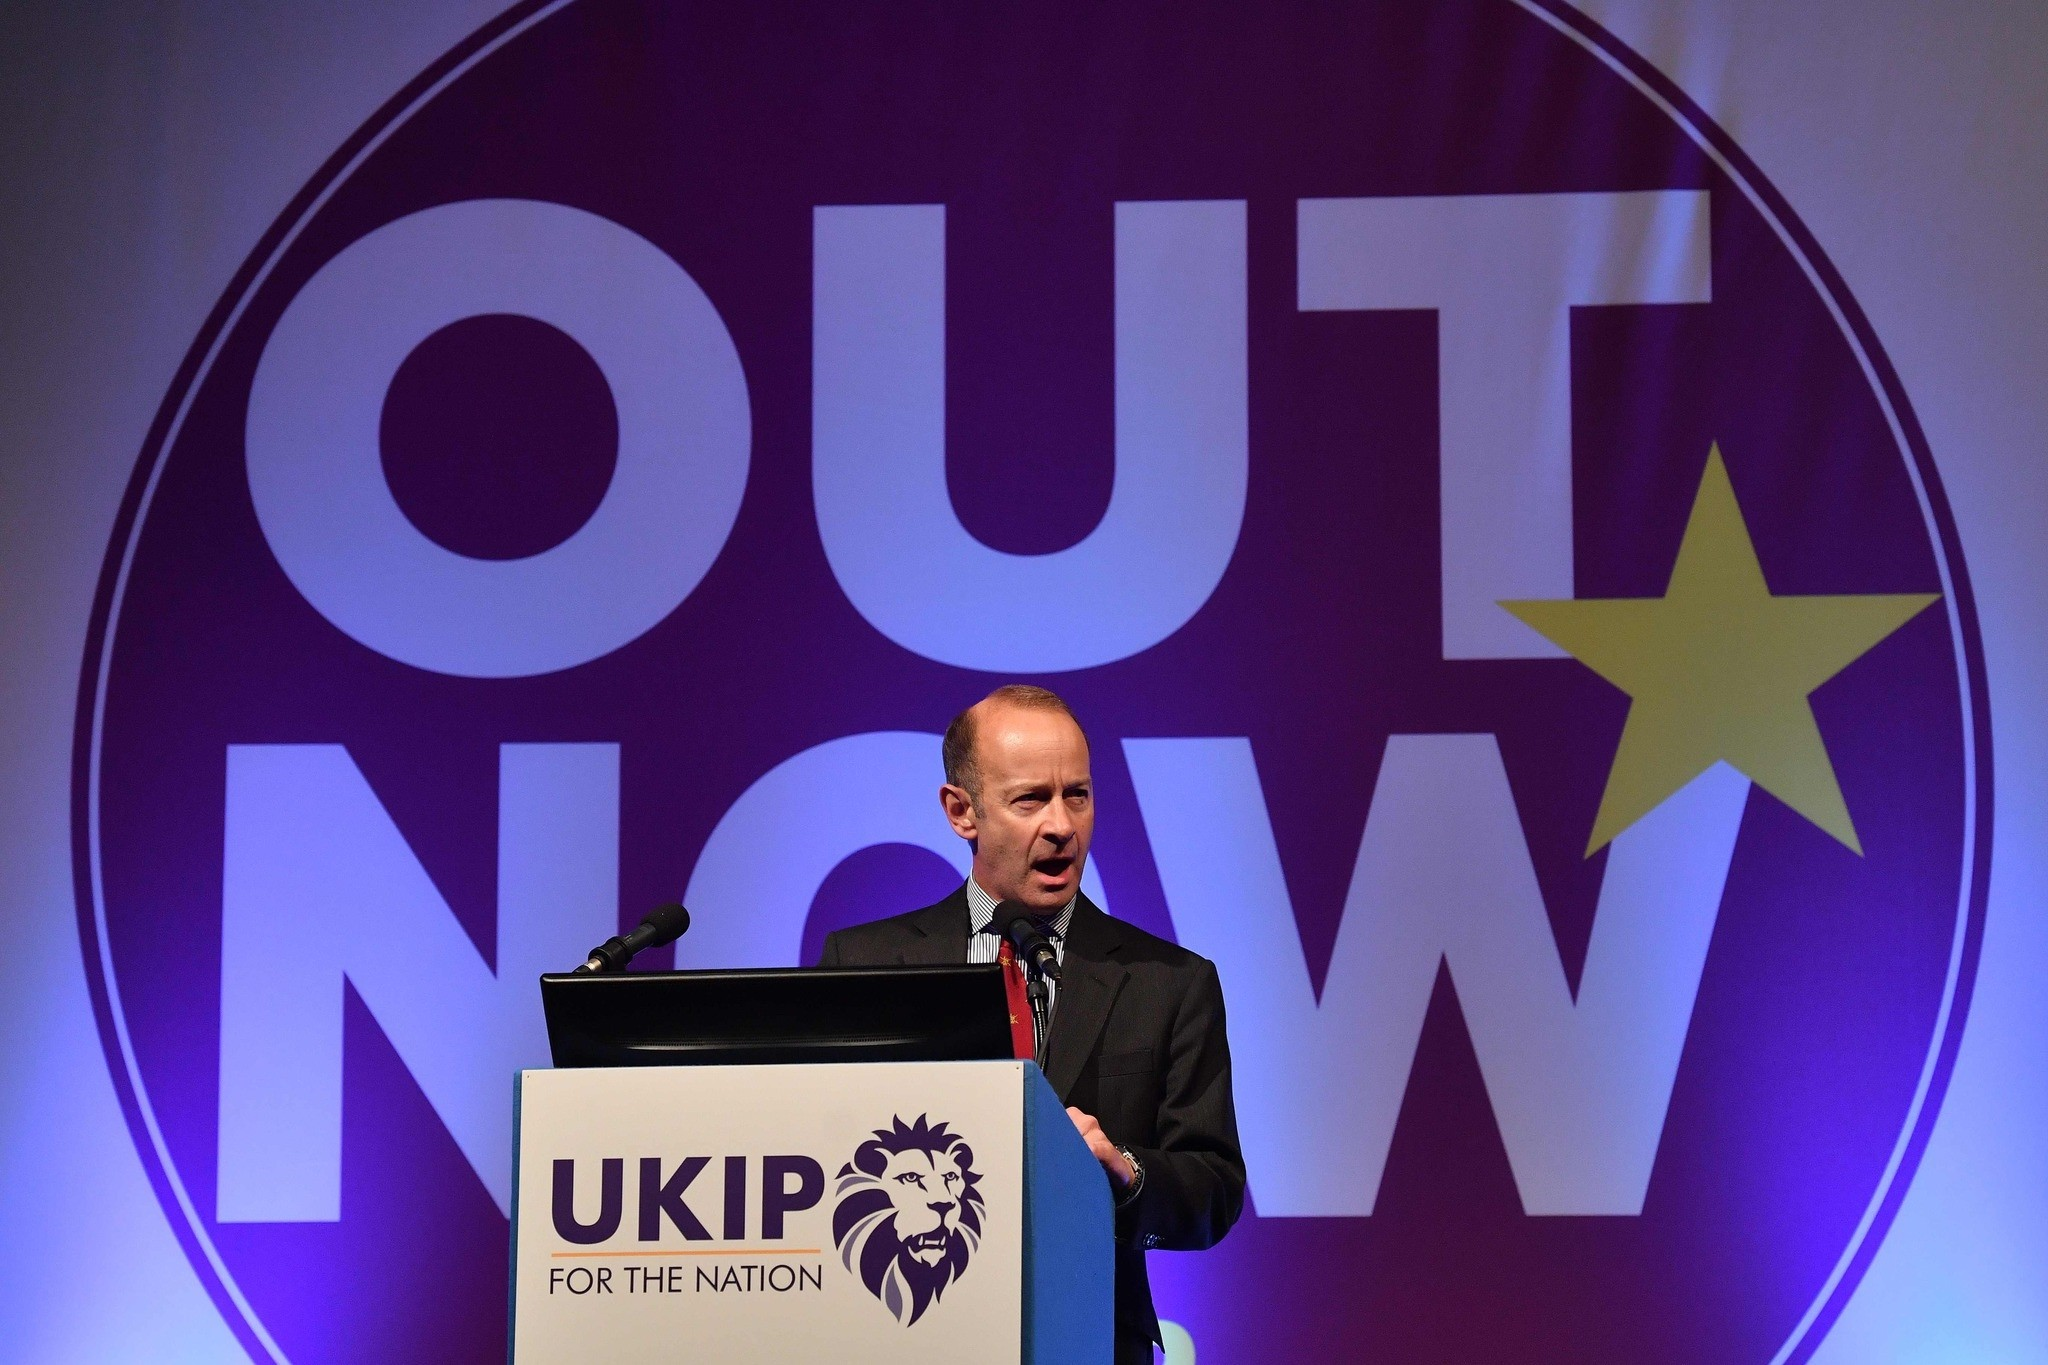 UK Independence Party's newly elected leader, Henry Bolton greets delegates on the first day of the UK Independence Party (UKIP) National Conference in Torquay, south-west England, on September 29, 2017. (AFP Photo)